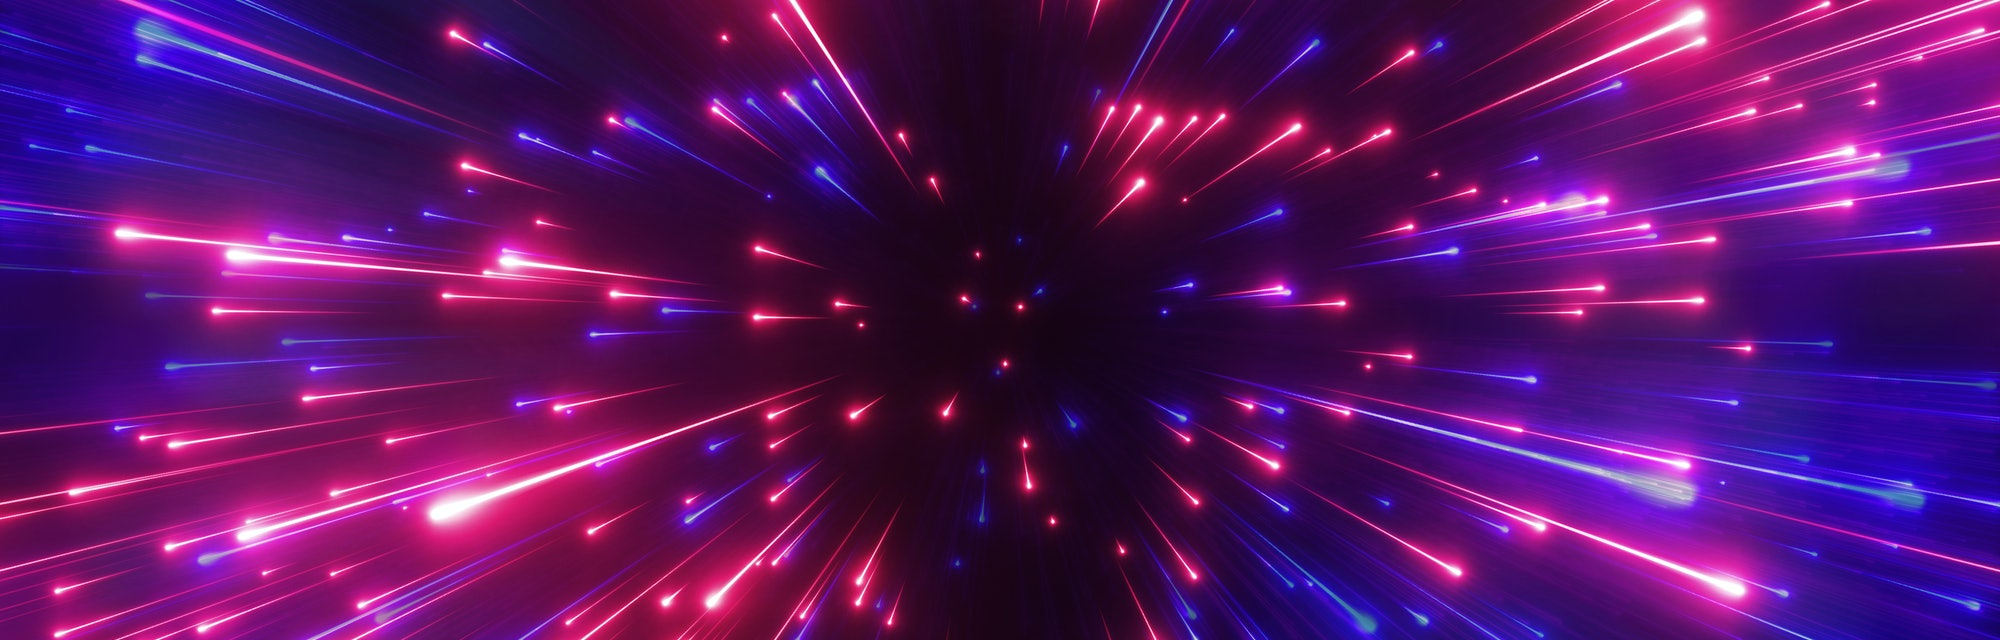 3d render, red blue fireworks, big bang, galaxy, abstract cosmic background, celestial, beauty of un...